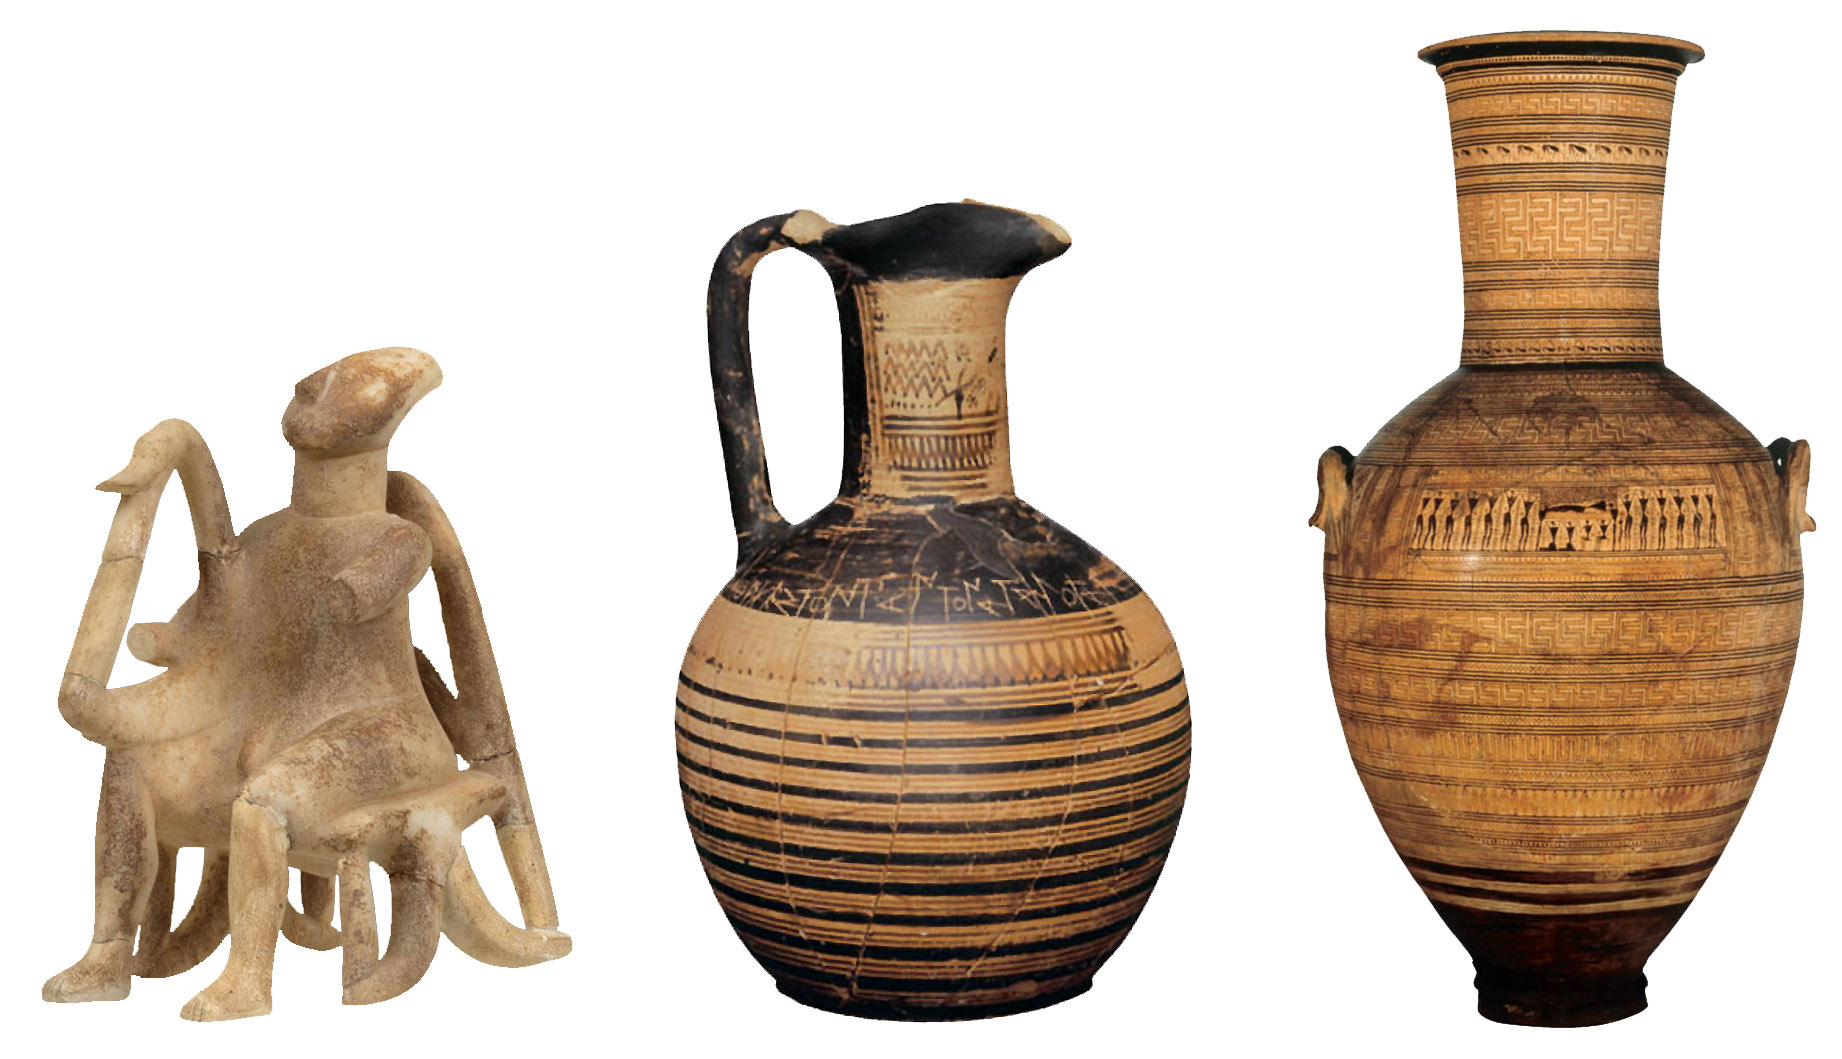 objects from Palaiologos